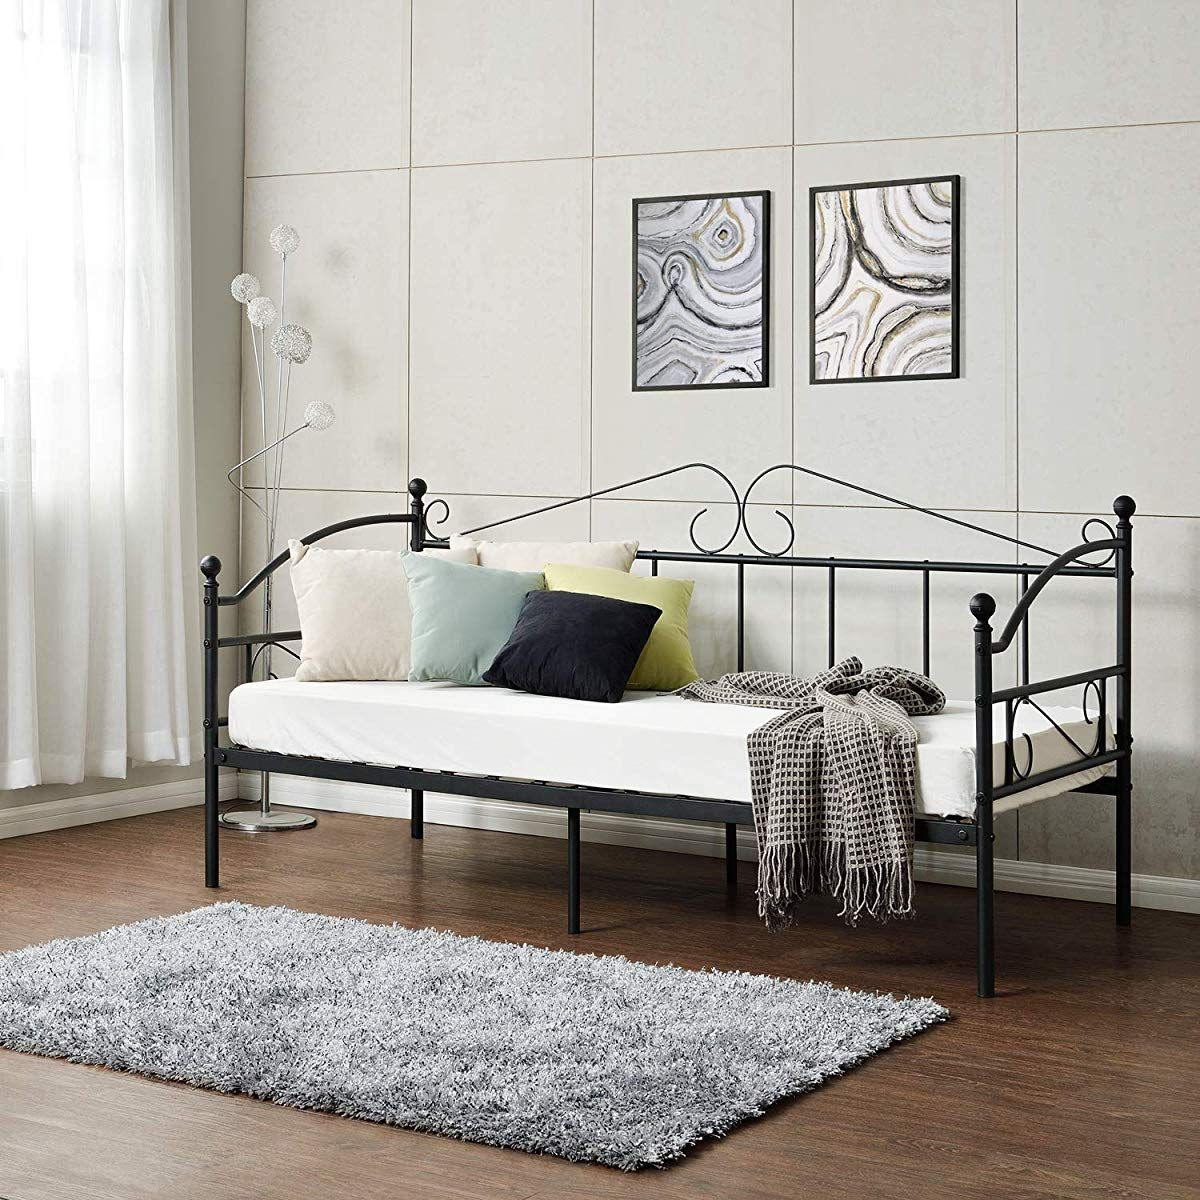 GreenForest Metal Daybed Twin Size with Headboard Metal